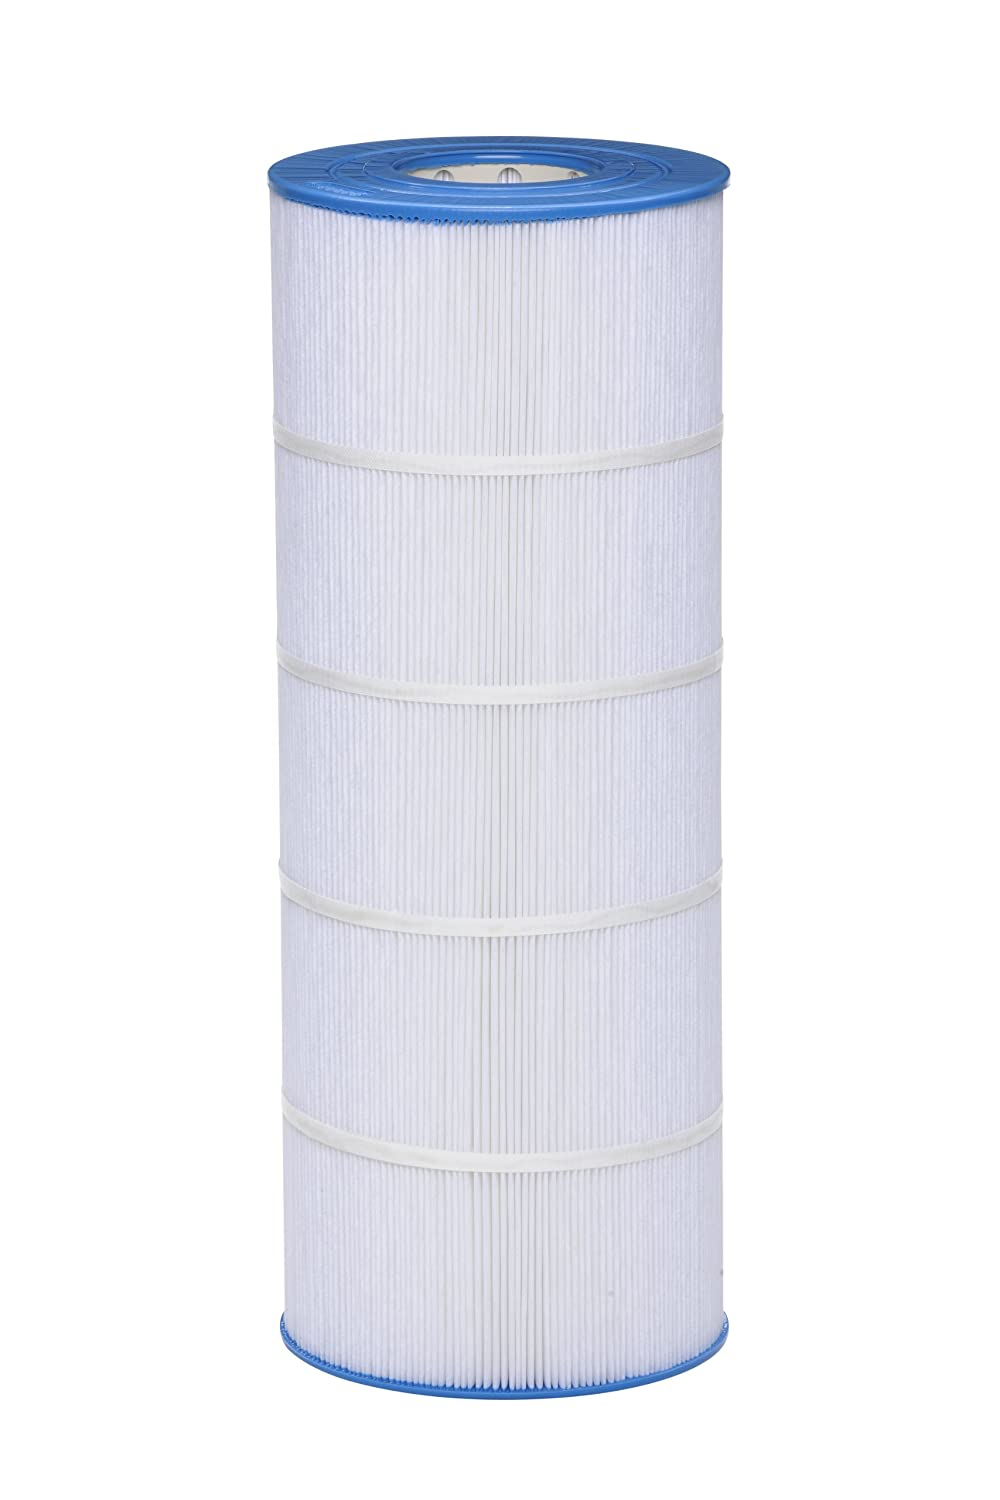 Aladdin 22002SVP-8 Hayward CX1200RE Replacement Filter Cartridge, Unicel C-8412, Pleatco PA120, Filbur FC-1293 Star Clear Plus C-1200, Clearwater Pro Clean 125 Swimming Pool Filter Cartridge